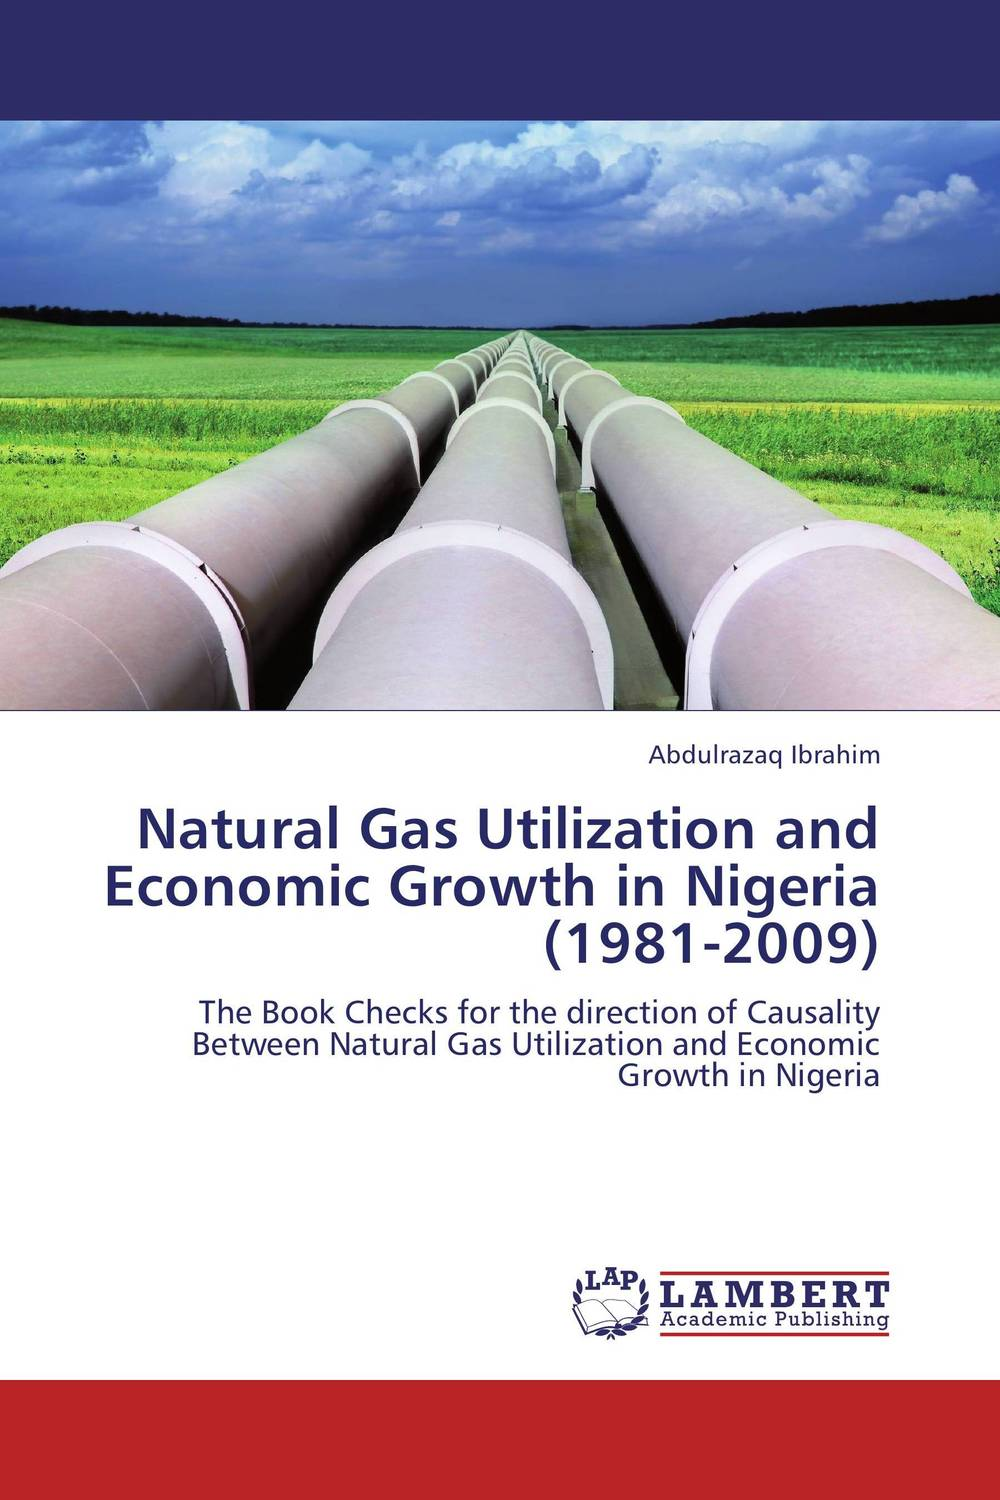 Natural Gas Utilization and Economic Growth in Nigeria (1981-2009) measles immunity status of children in kano nigeria